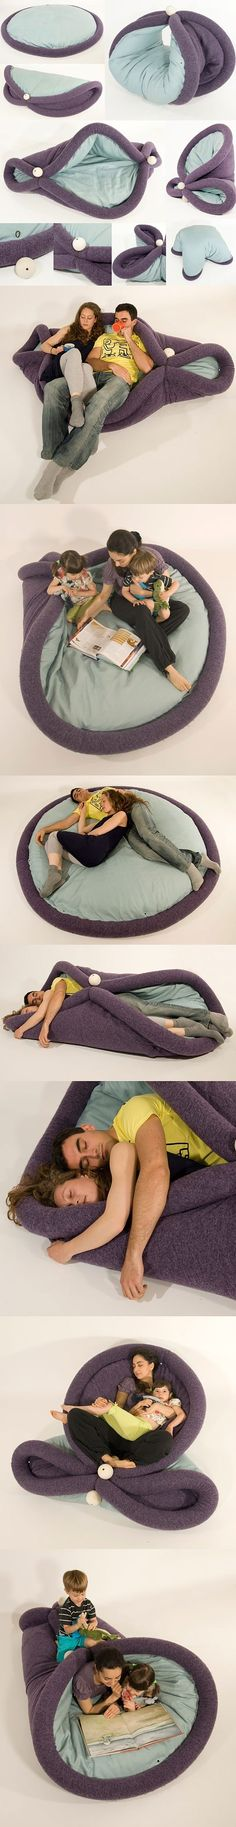 I want this!!! So perfect!